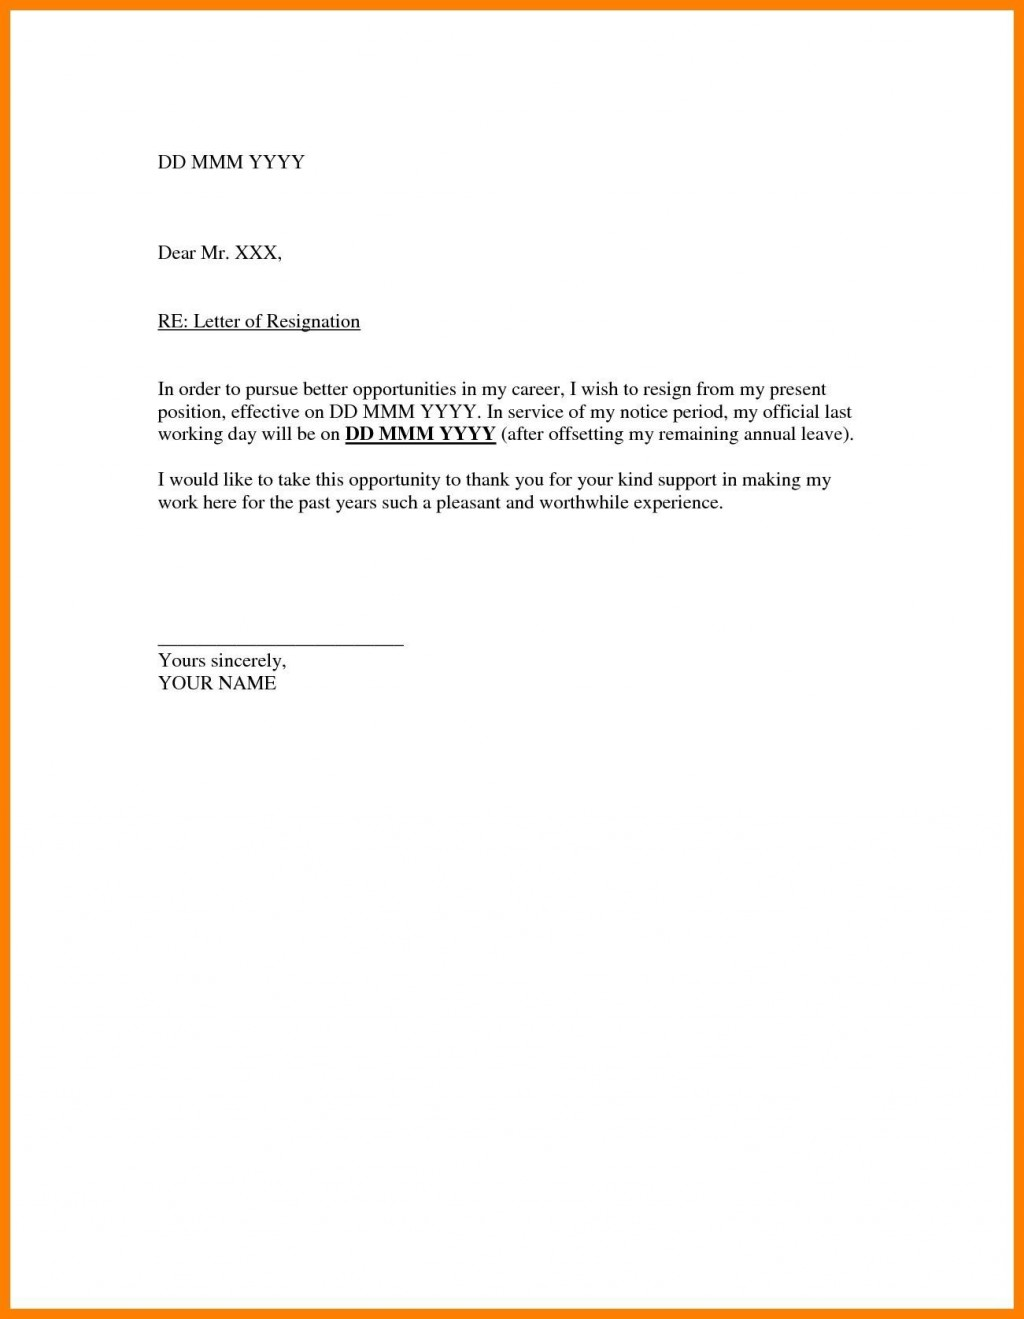 004 Stunning Resignation Letter Sample Free Doc High Def  .docLarge